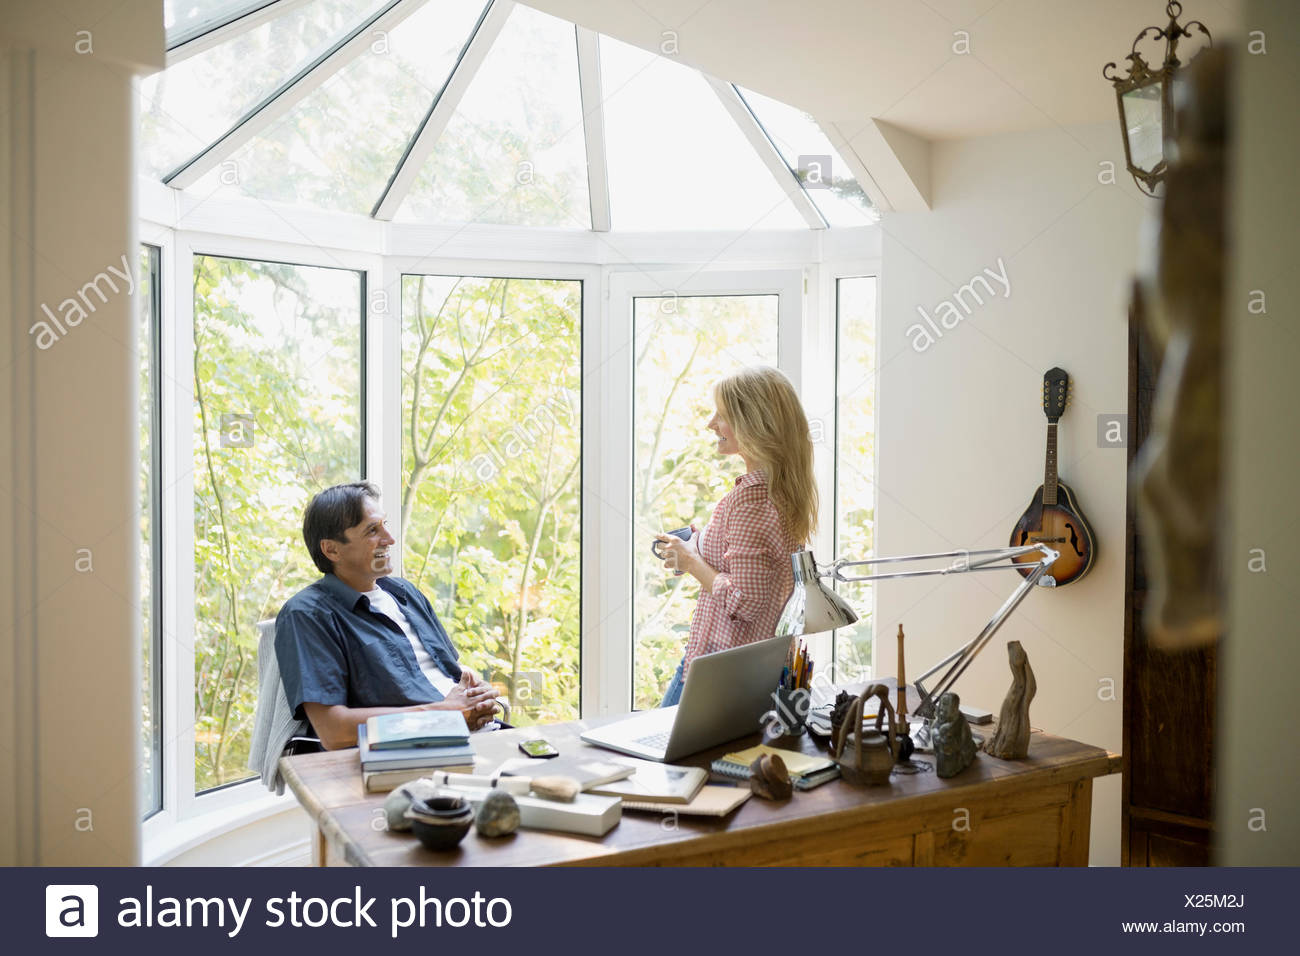 Couple talking in home office - Stock Image